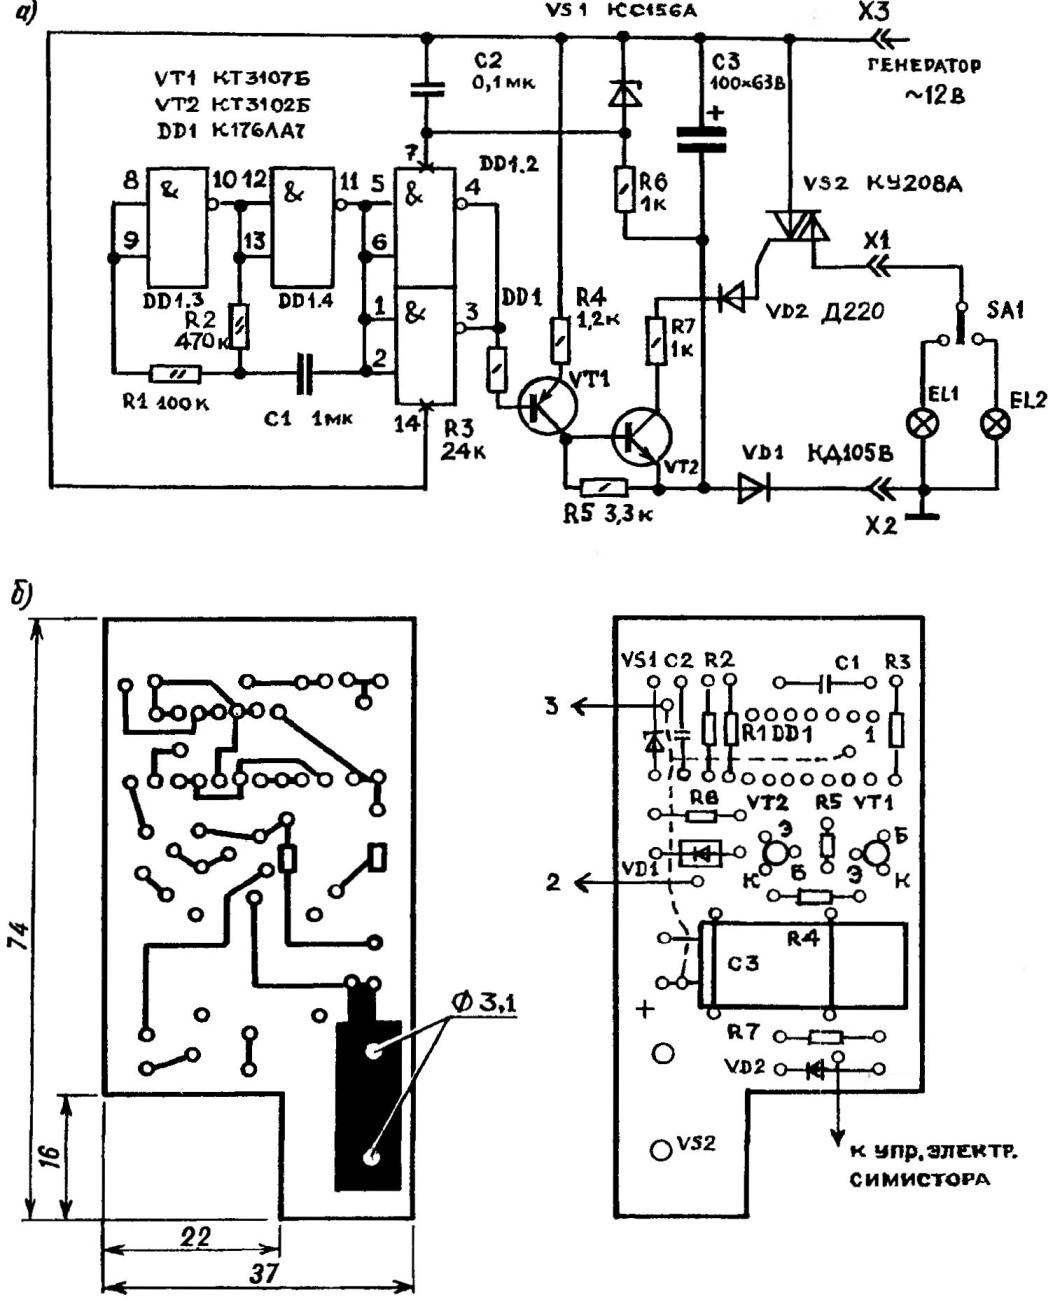 Electrical schematic (a) and a printed circuit Board, (b) Blinker